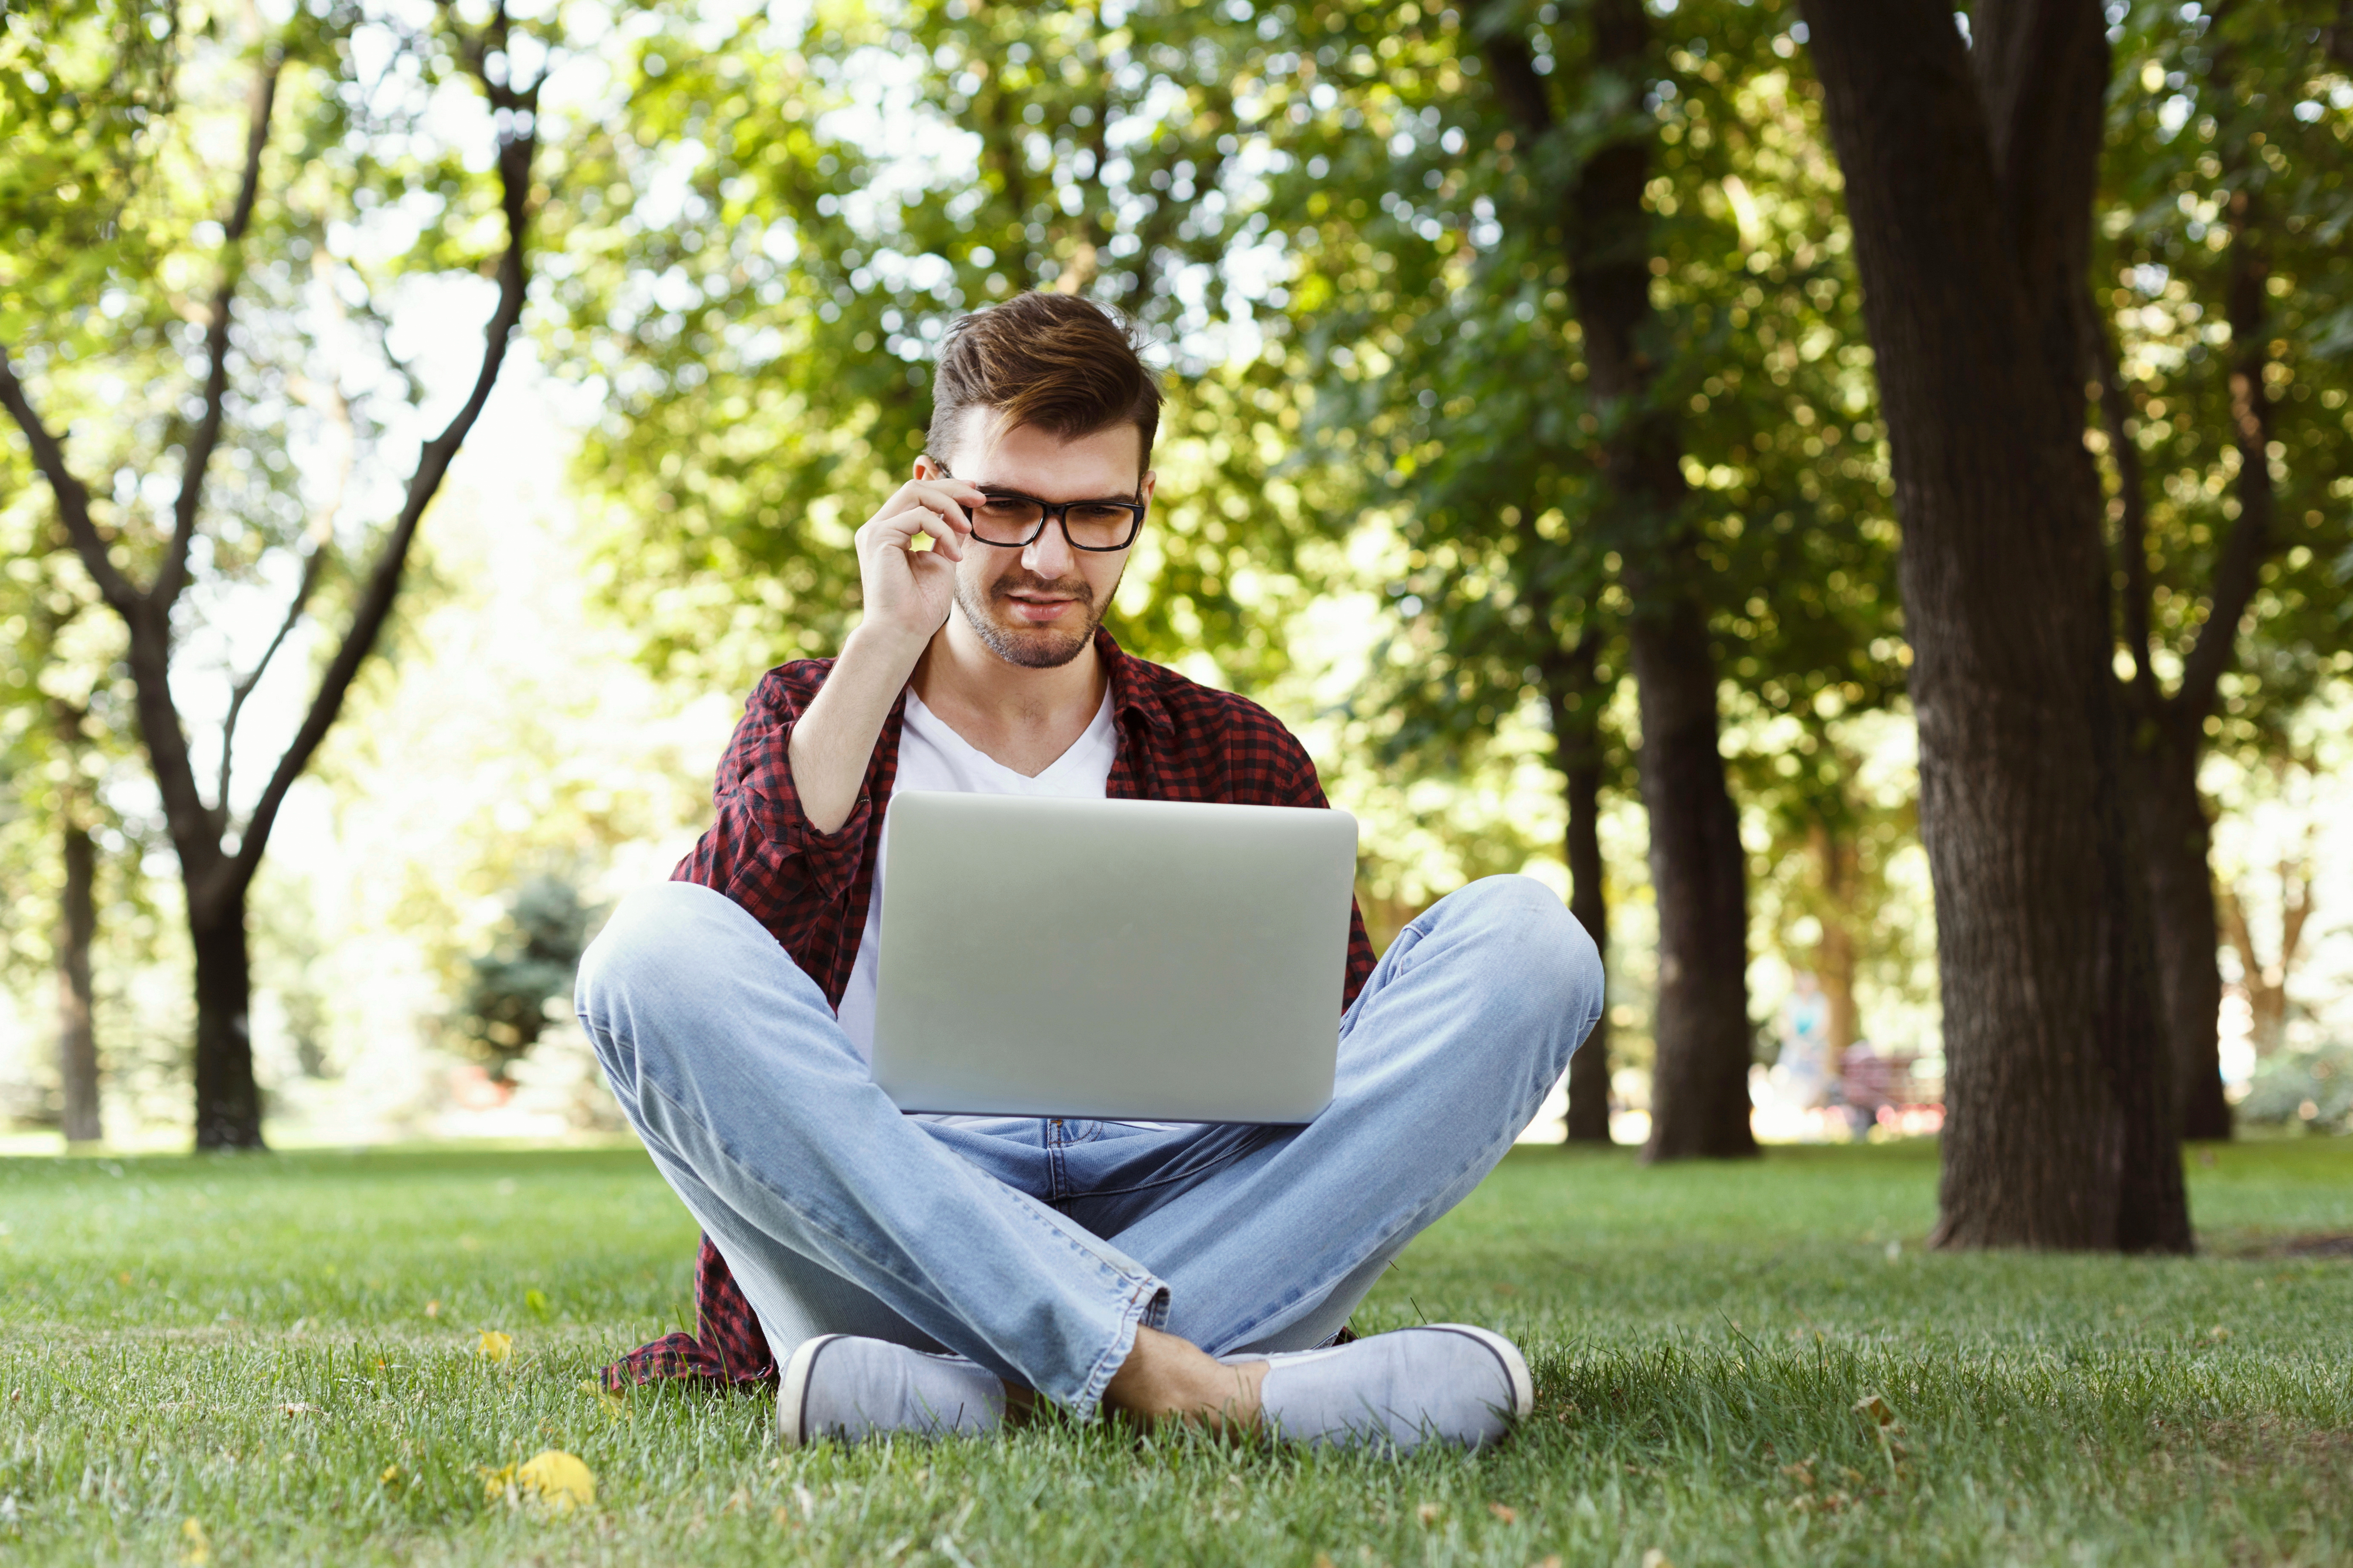 Man working outdoors on laptop. Preparing for exams, sitting on grass at university campus park. Technology, communication, education and remote working concept, copy space